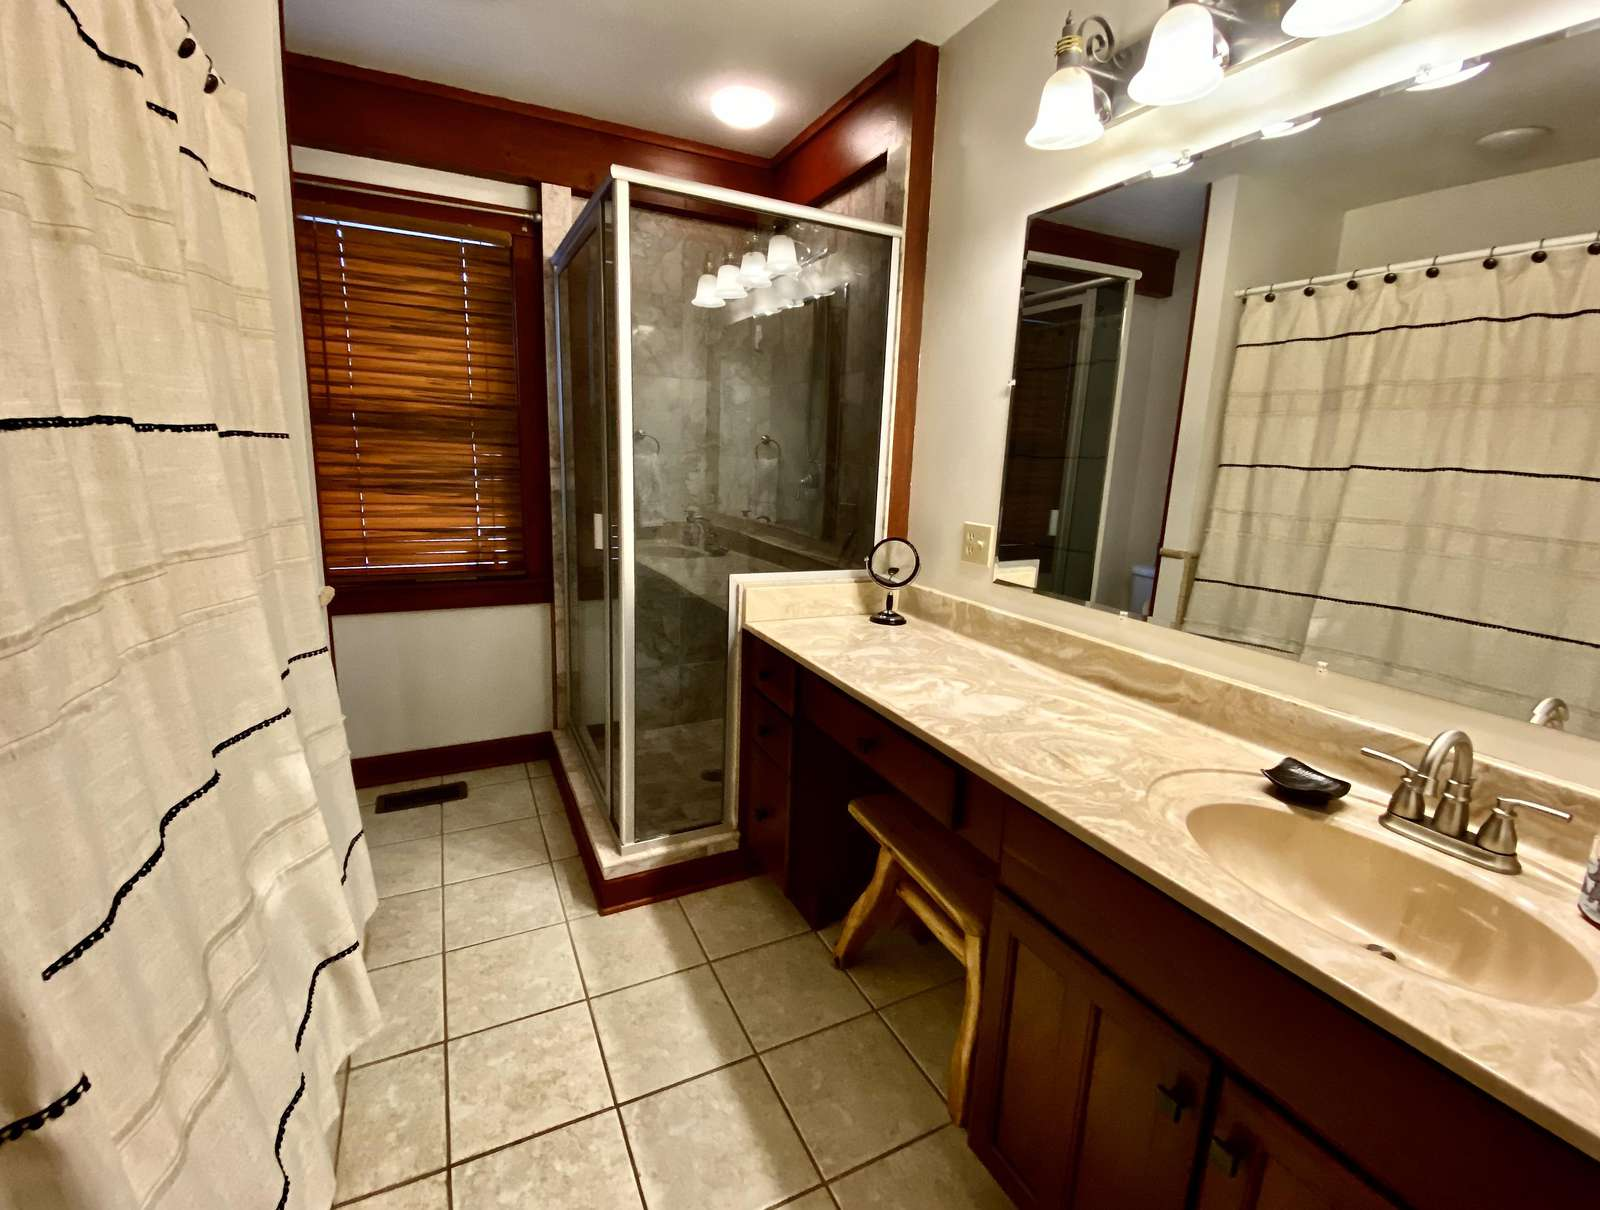 The Master Bathroom offers a Jetted Tub and Separate Tiled Shower